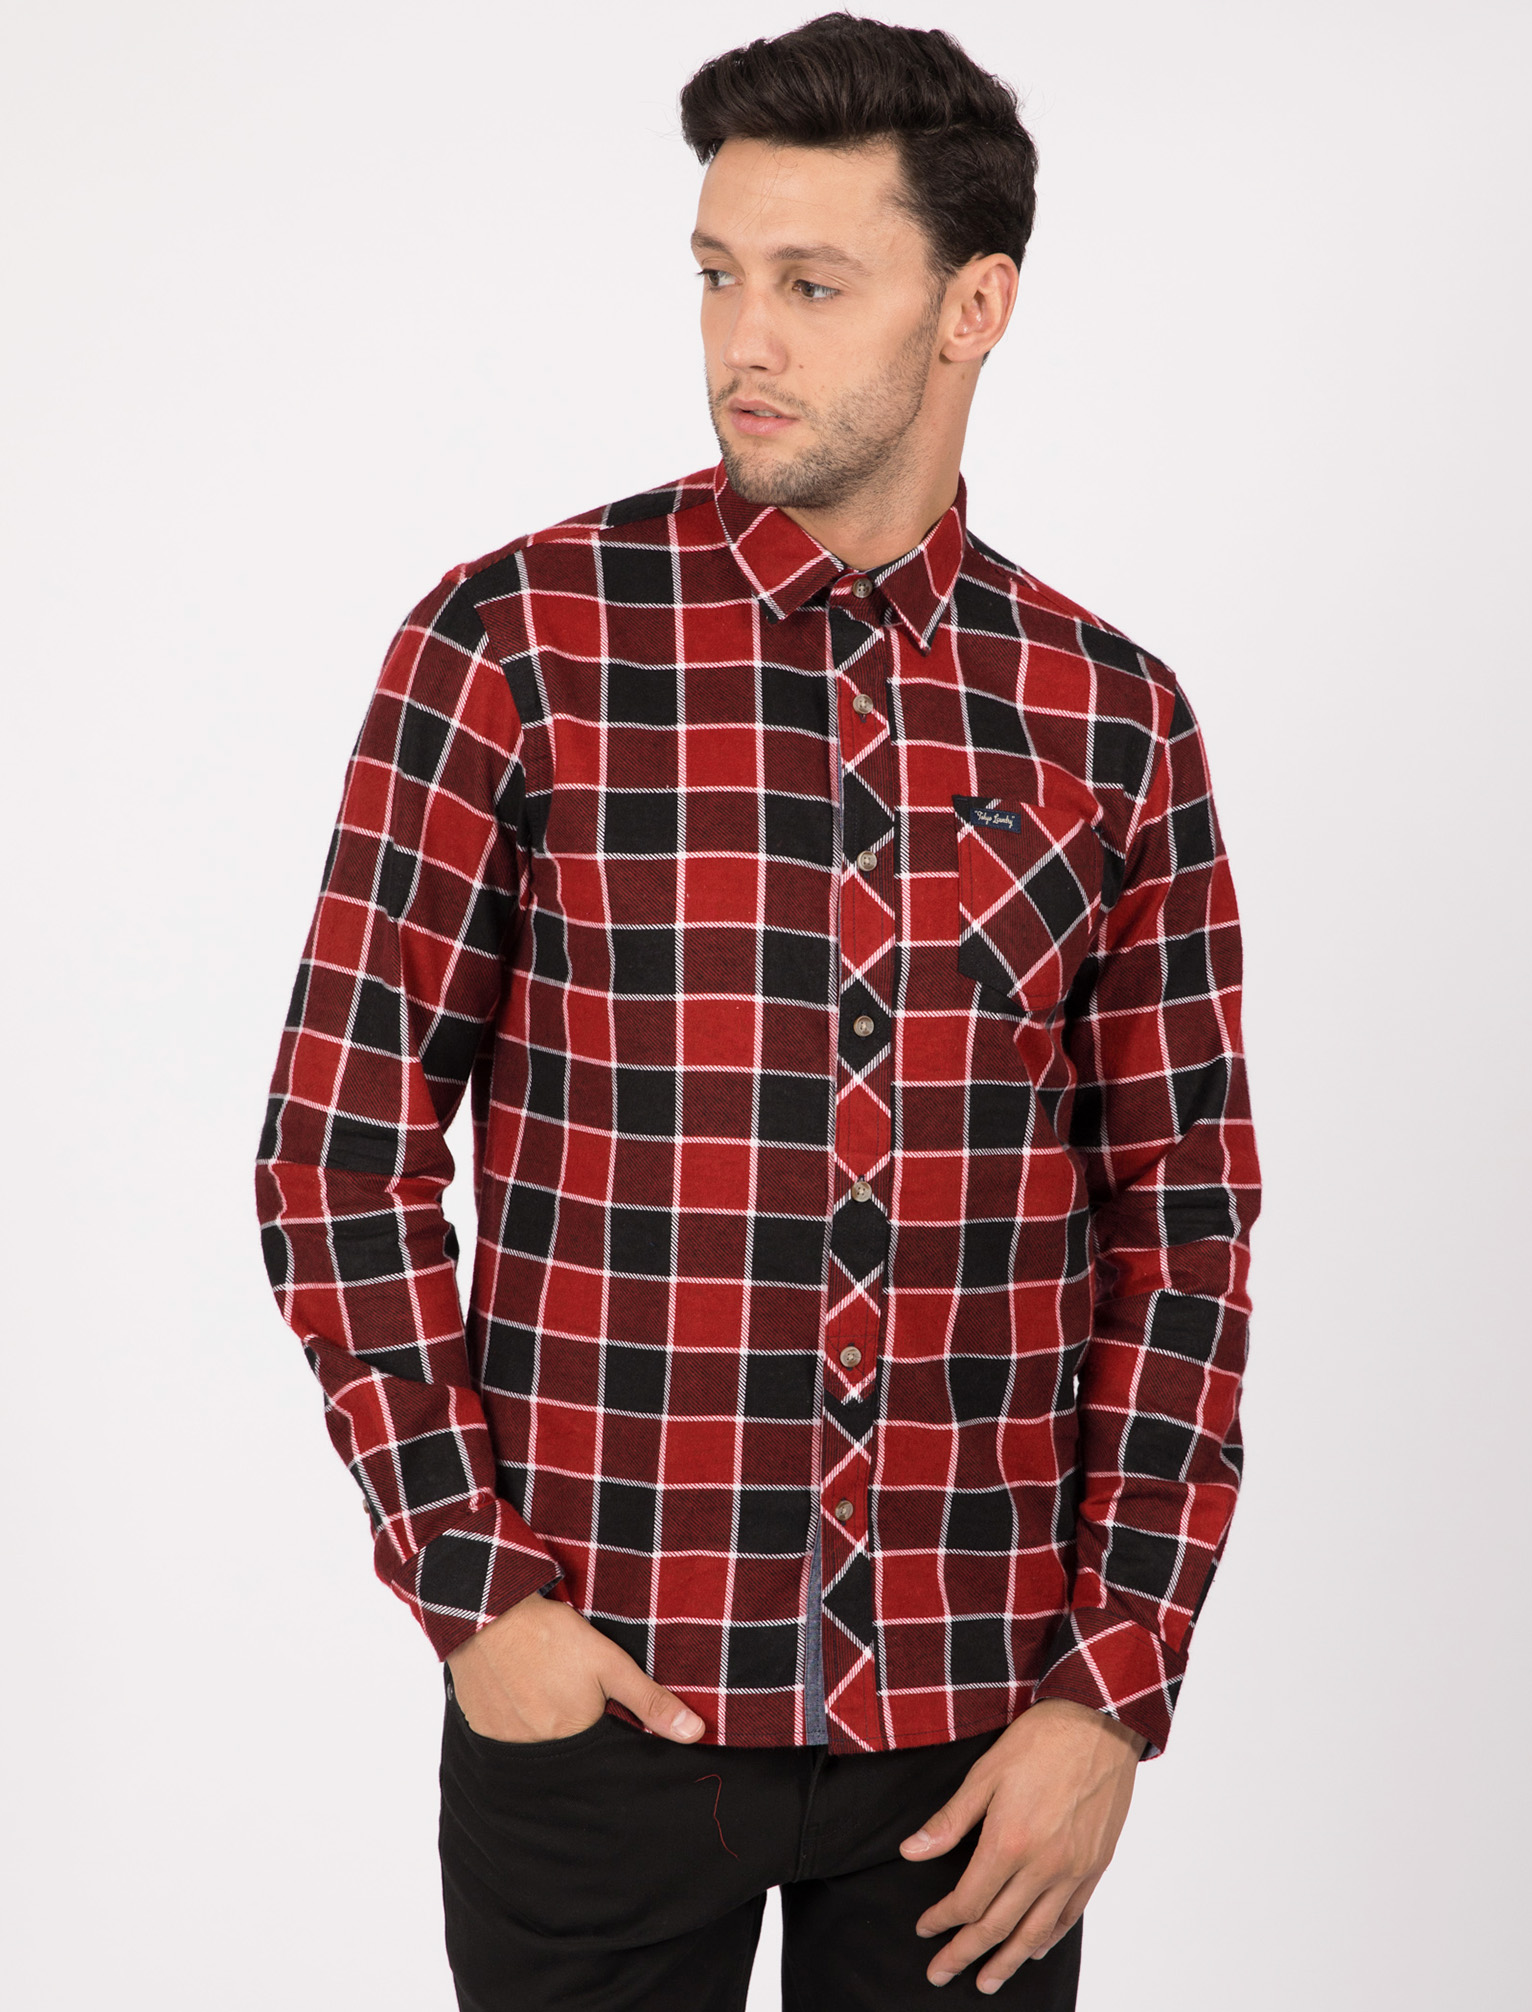 New-Mens-Tokyo-Laundry-Cotton-Long-Sleeve-Checked-Flannel-Shirt-Size-S-XL thumbnail 28